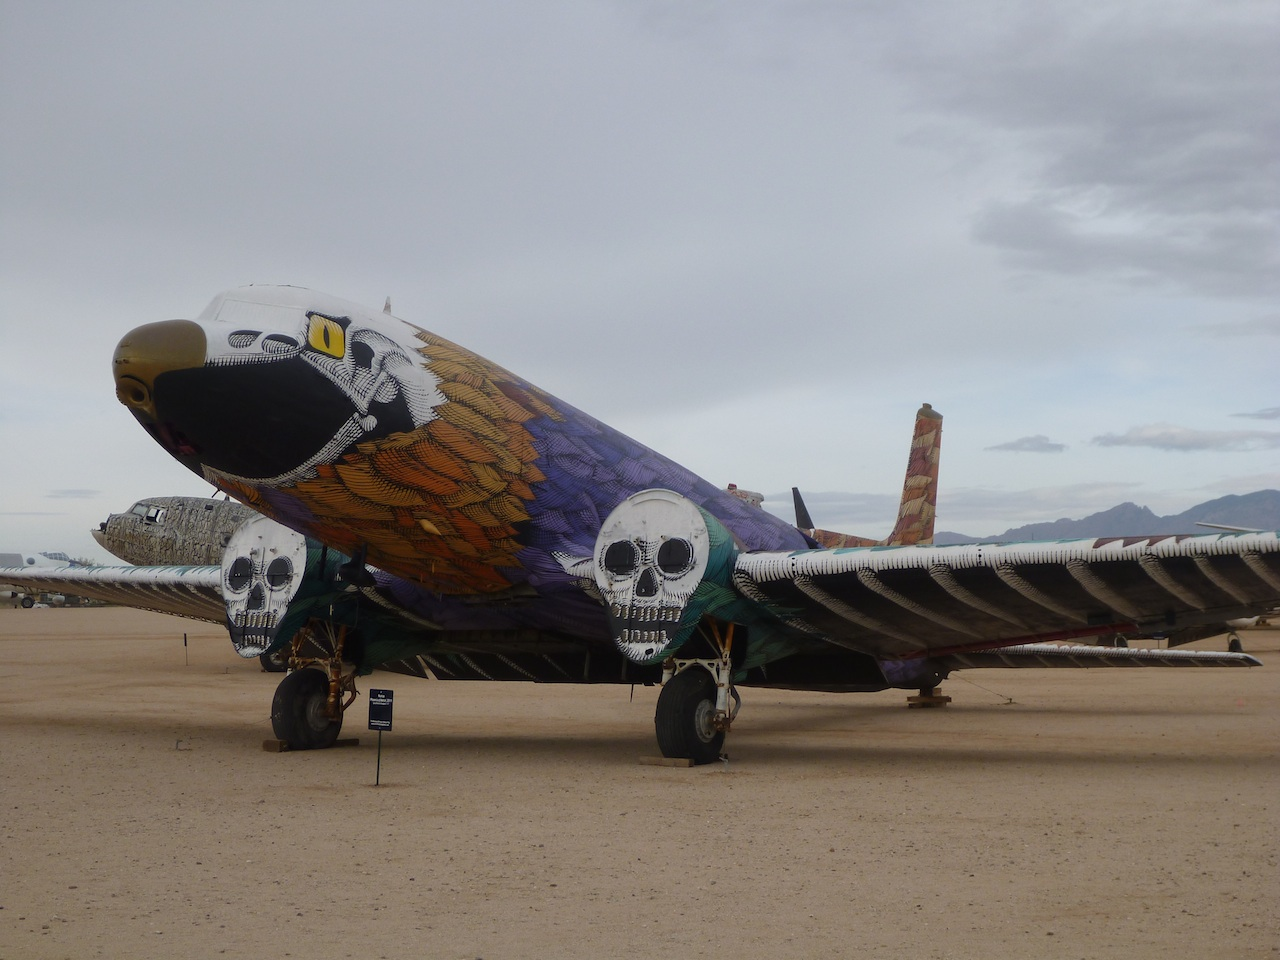 A Painted Plane Outside The Hangers